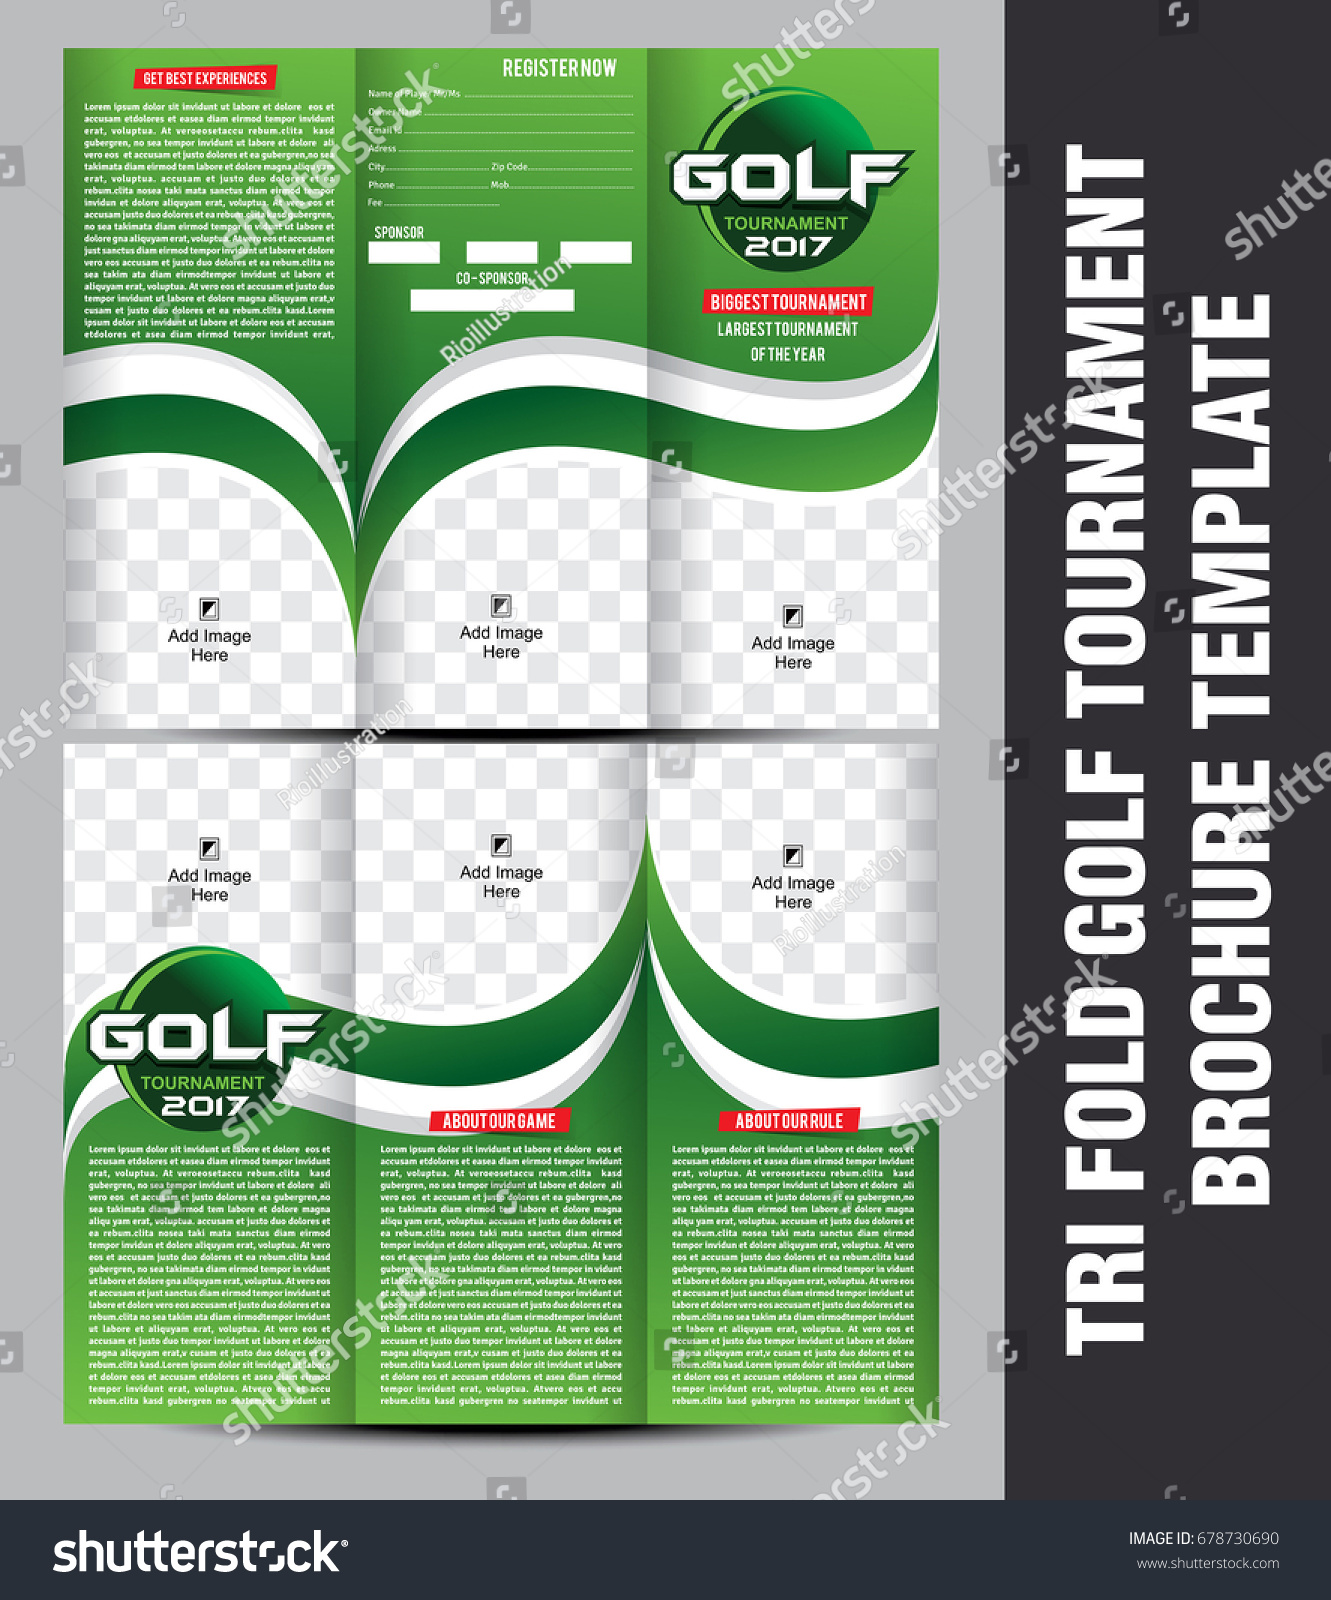 Tri Fold Golf Tournament Brochure Template Vector Illustration